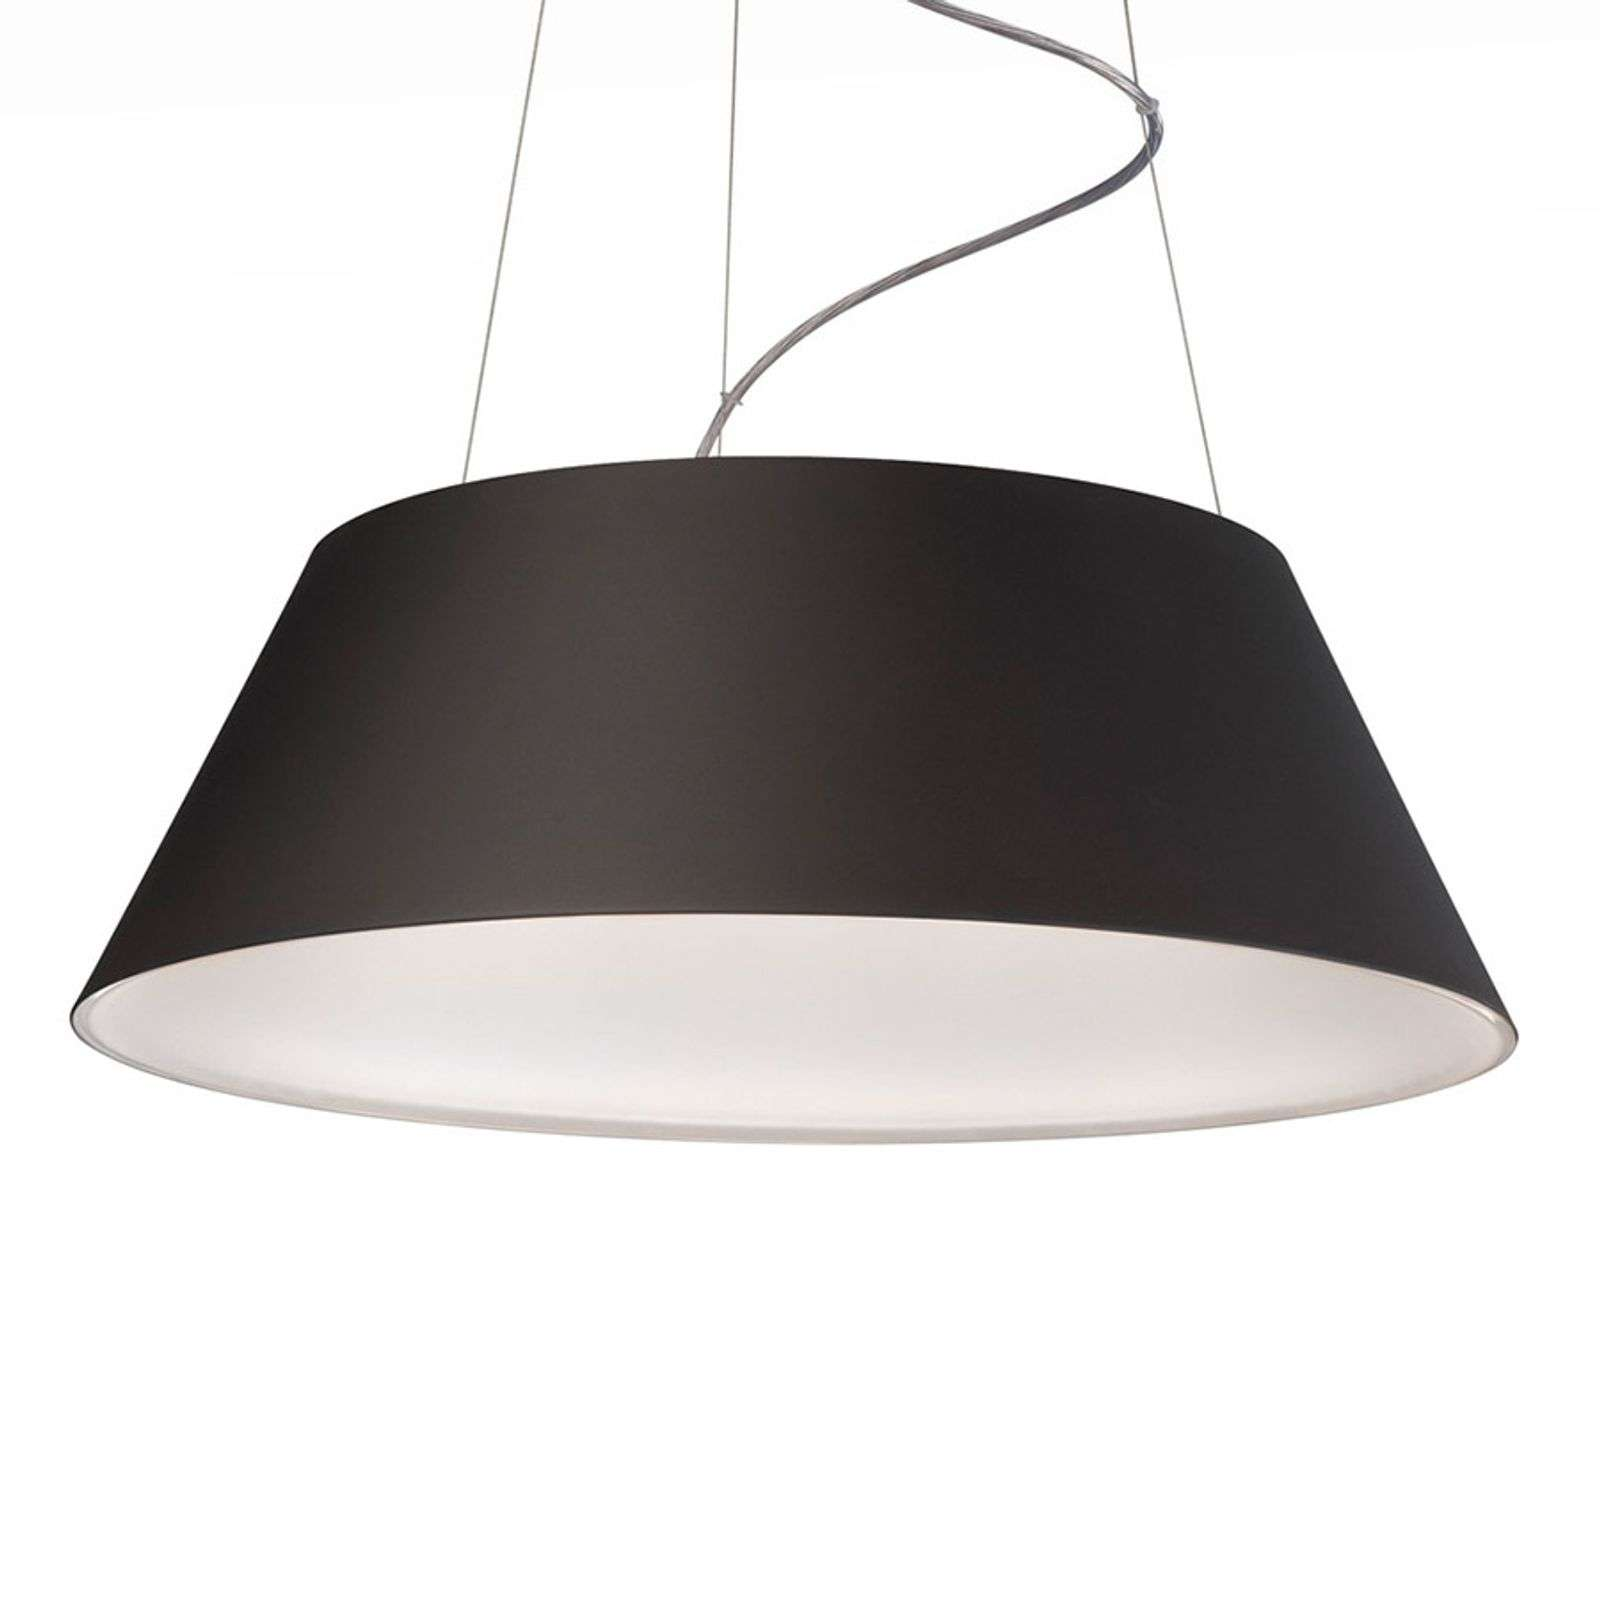 Suspension LED Cielo, noir